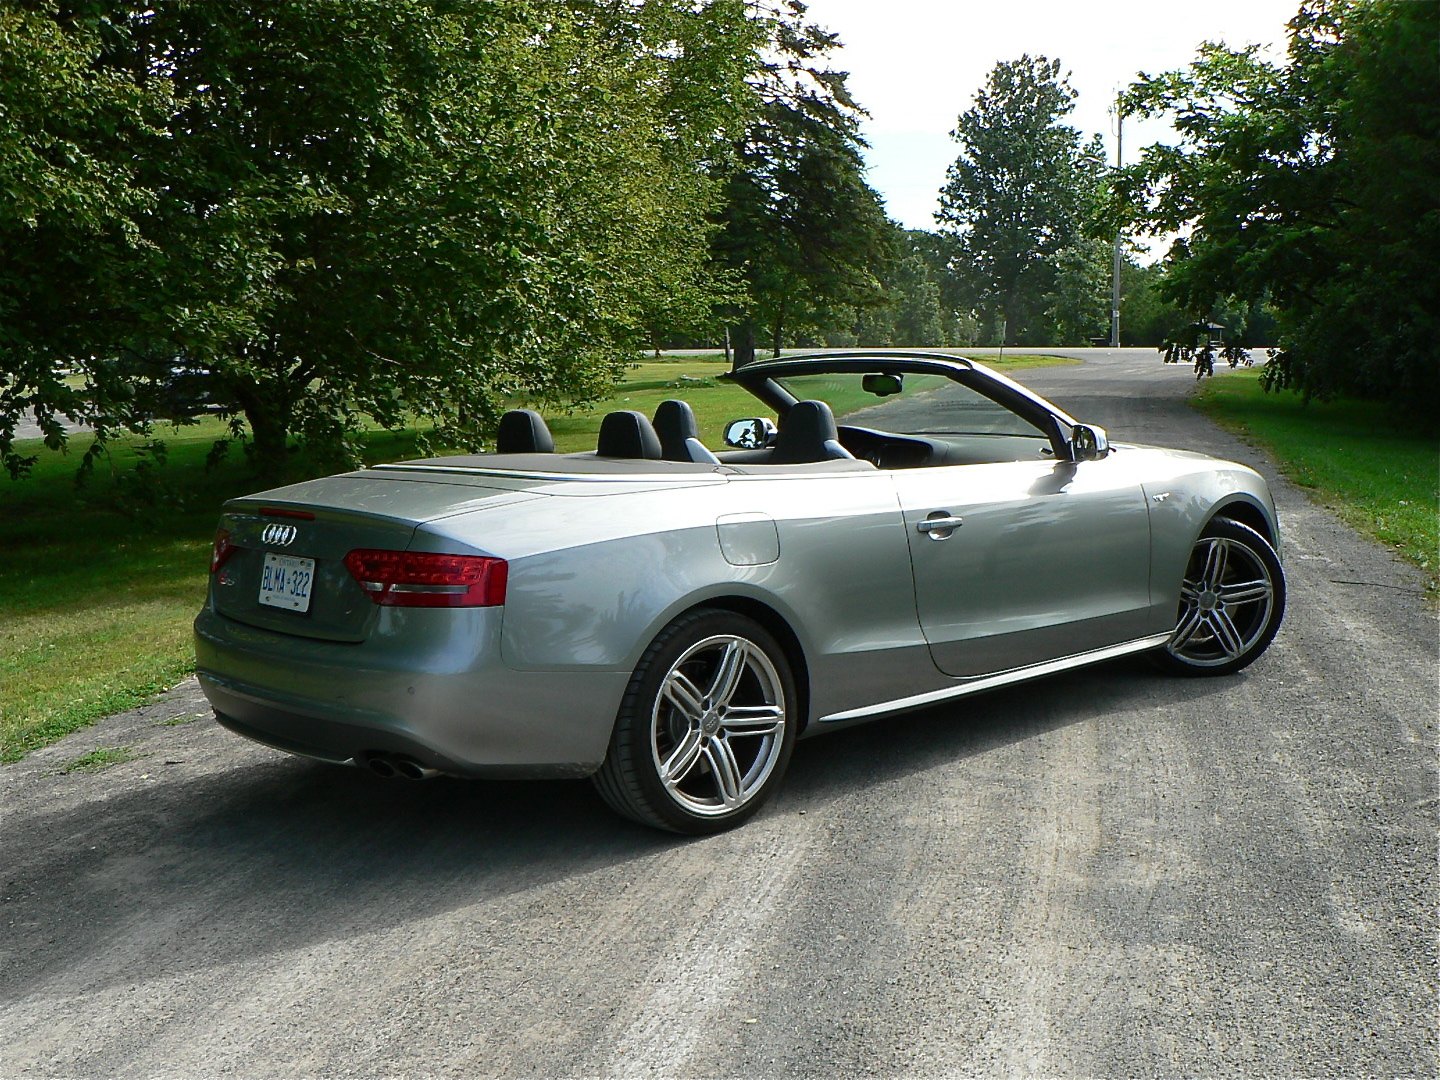 from the fleet 2011 audi s5 cabriolet john leblanc 39 s straight six. Black Bedroom Furniture Sets. Home Design Ideas